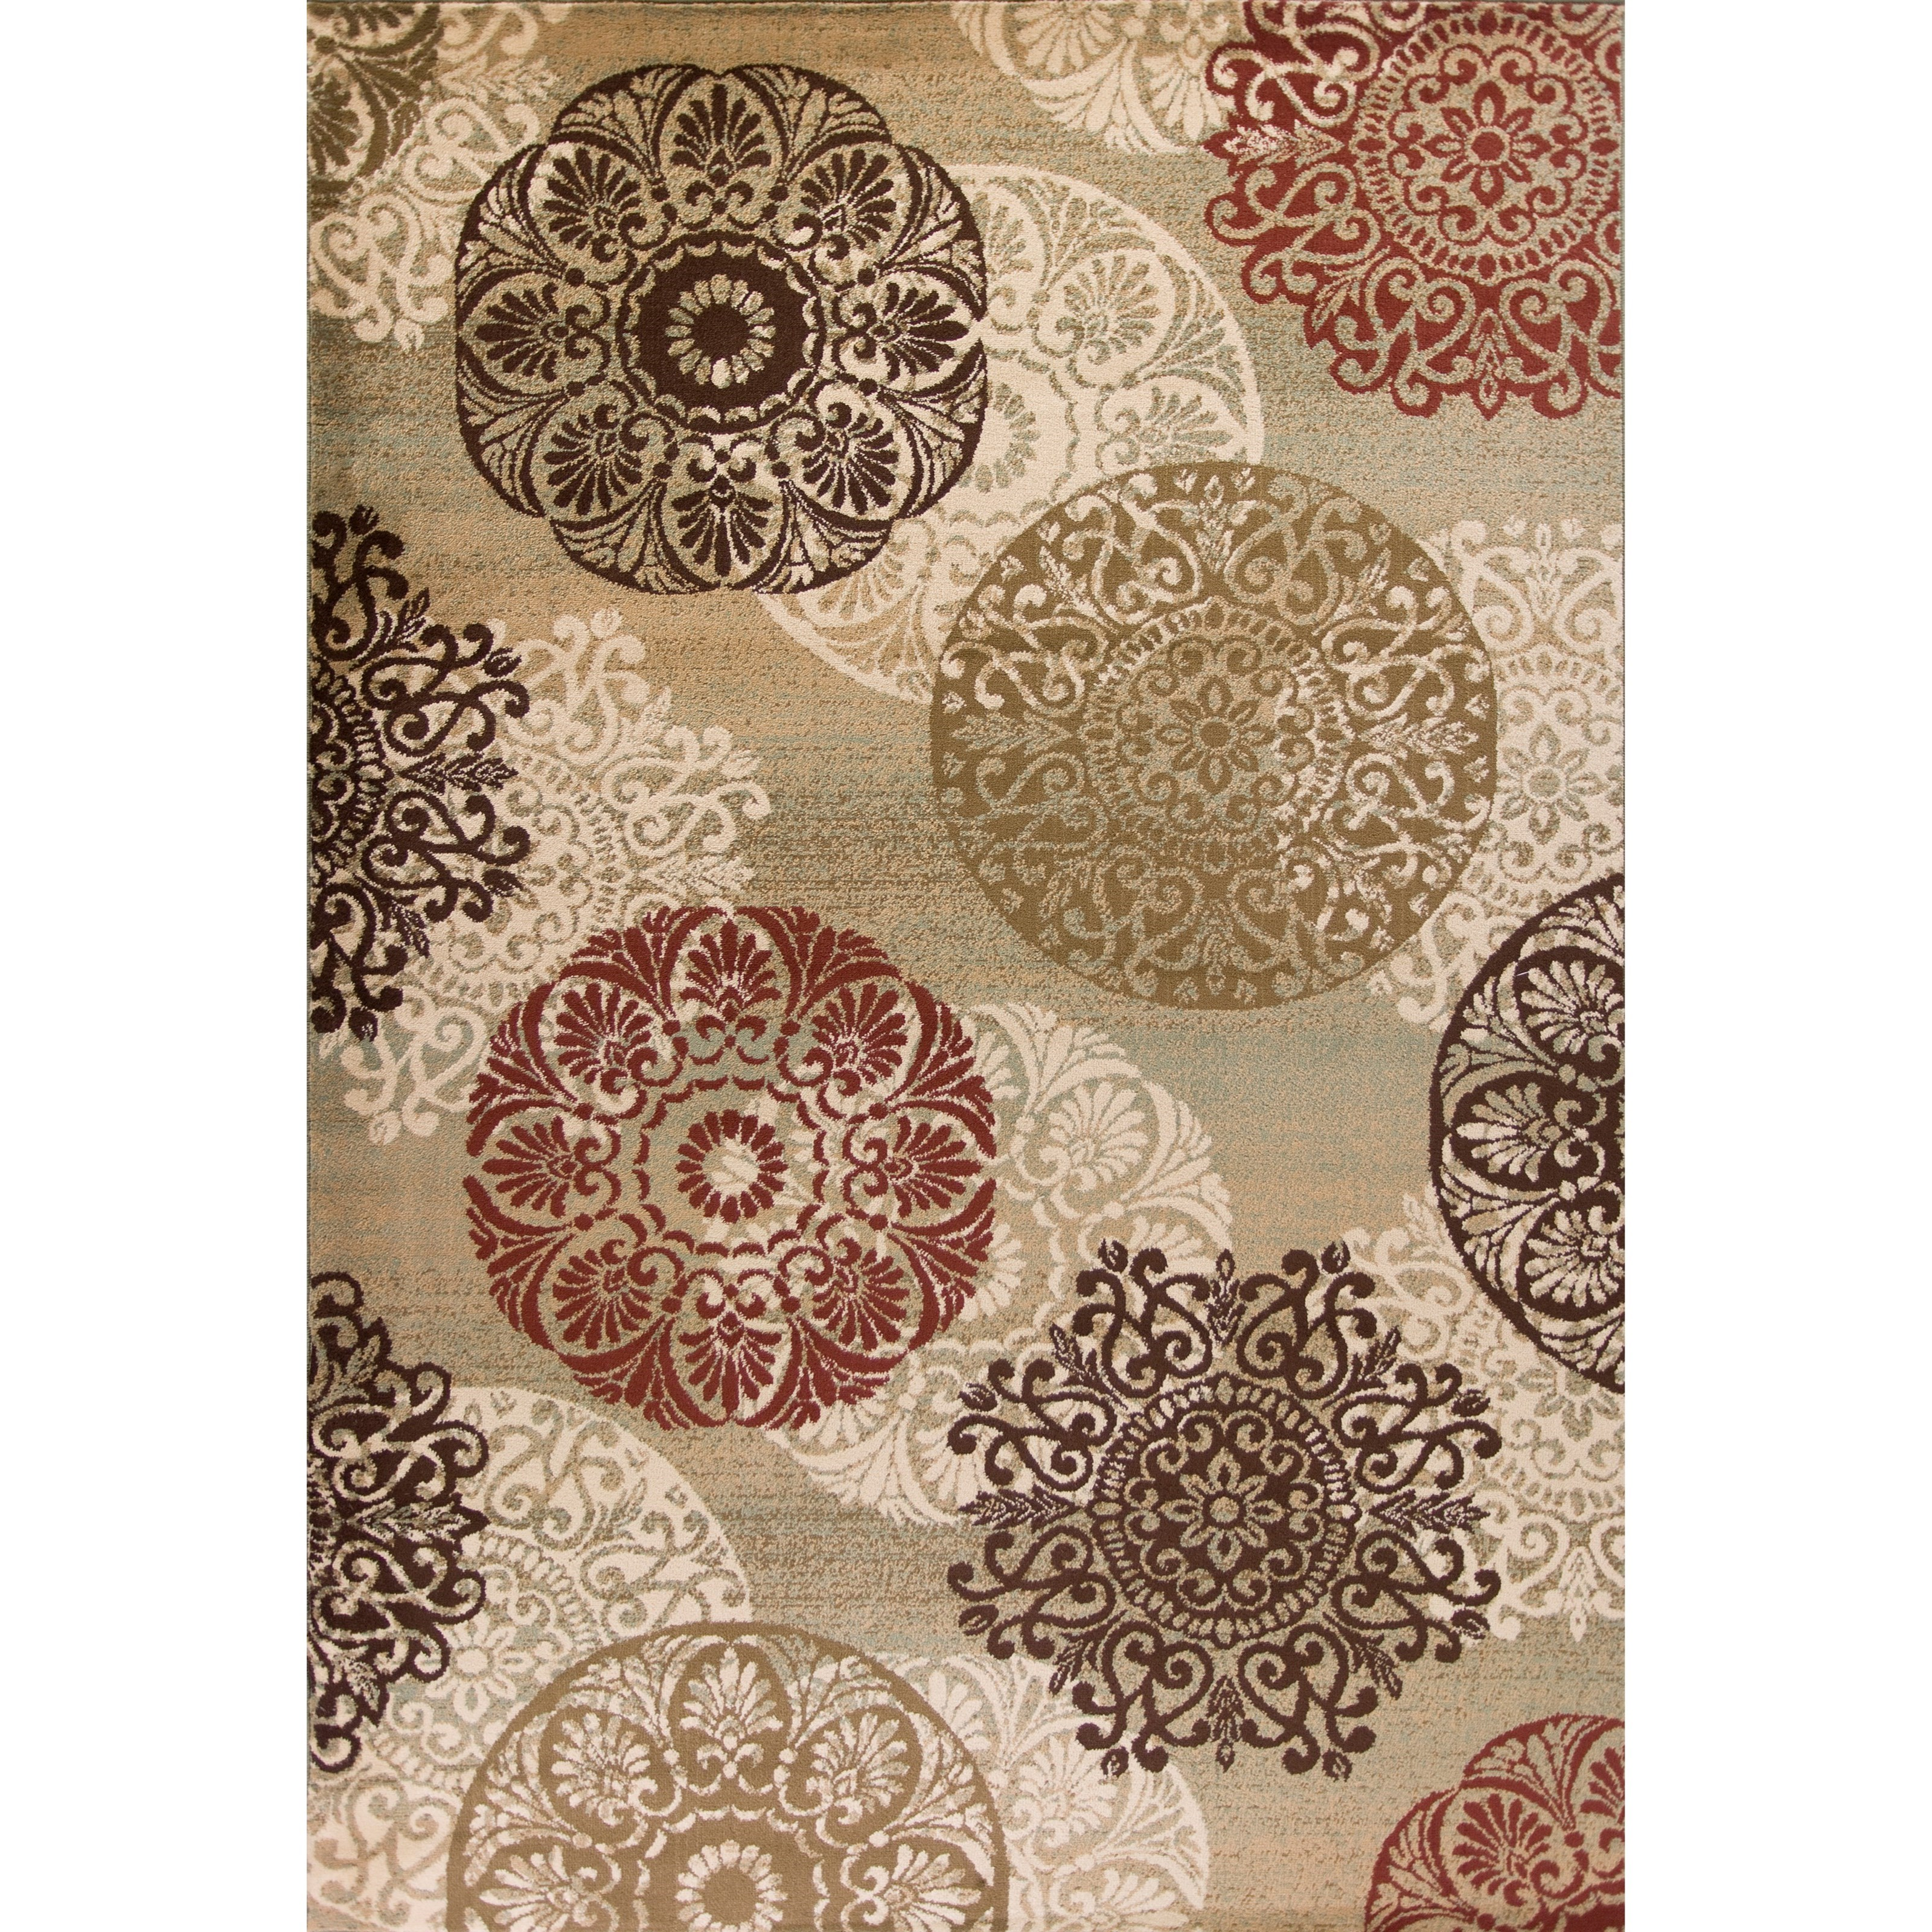 """Heritage 5'3"""" X 7'8"""" Sage Accents Area Rug by Kas at Zak's Home"""